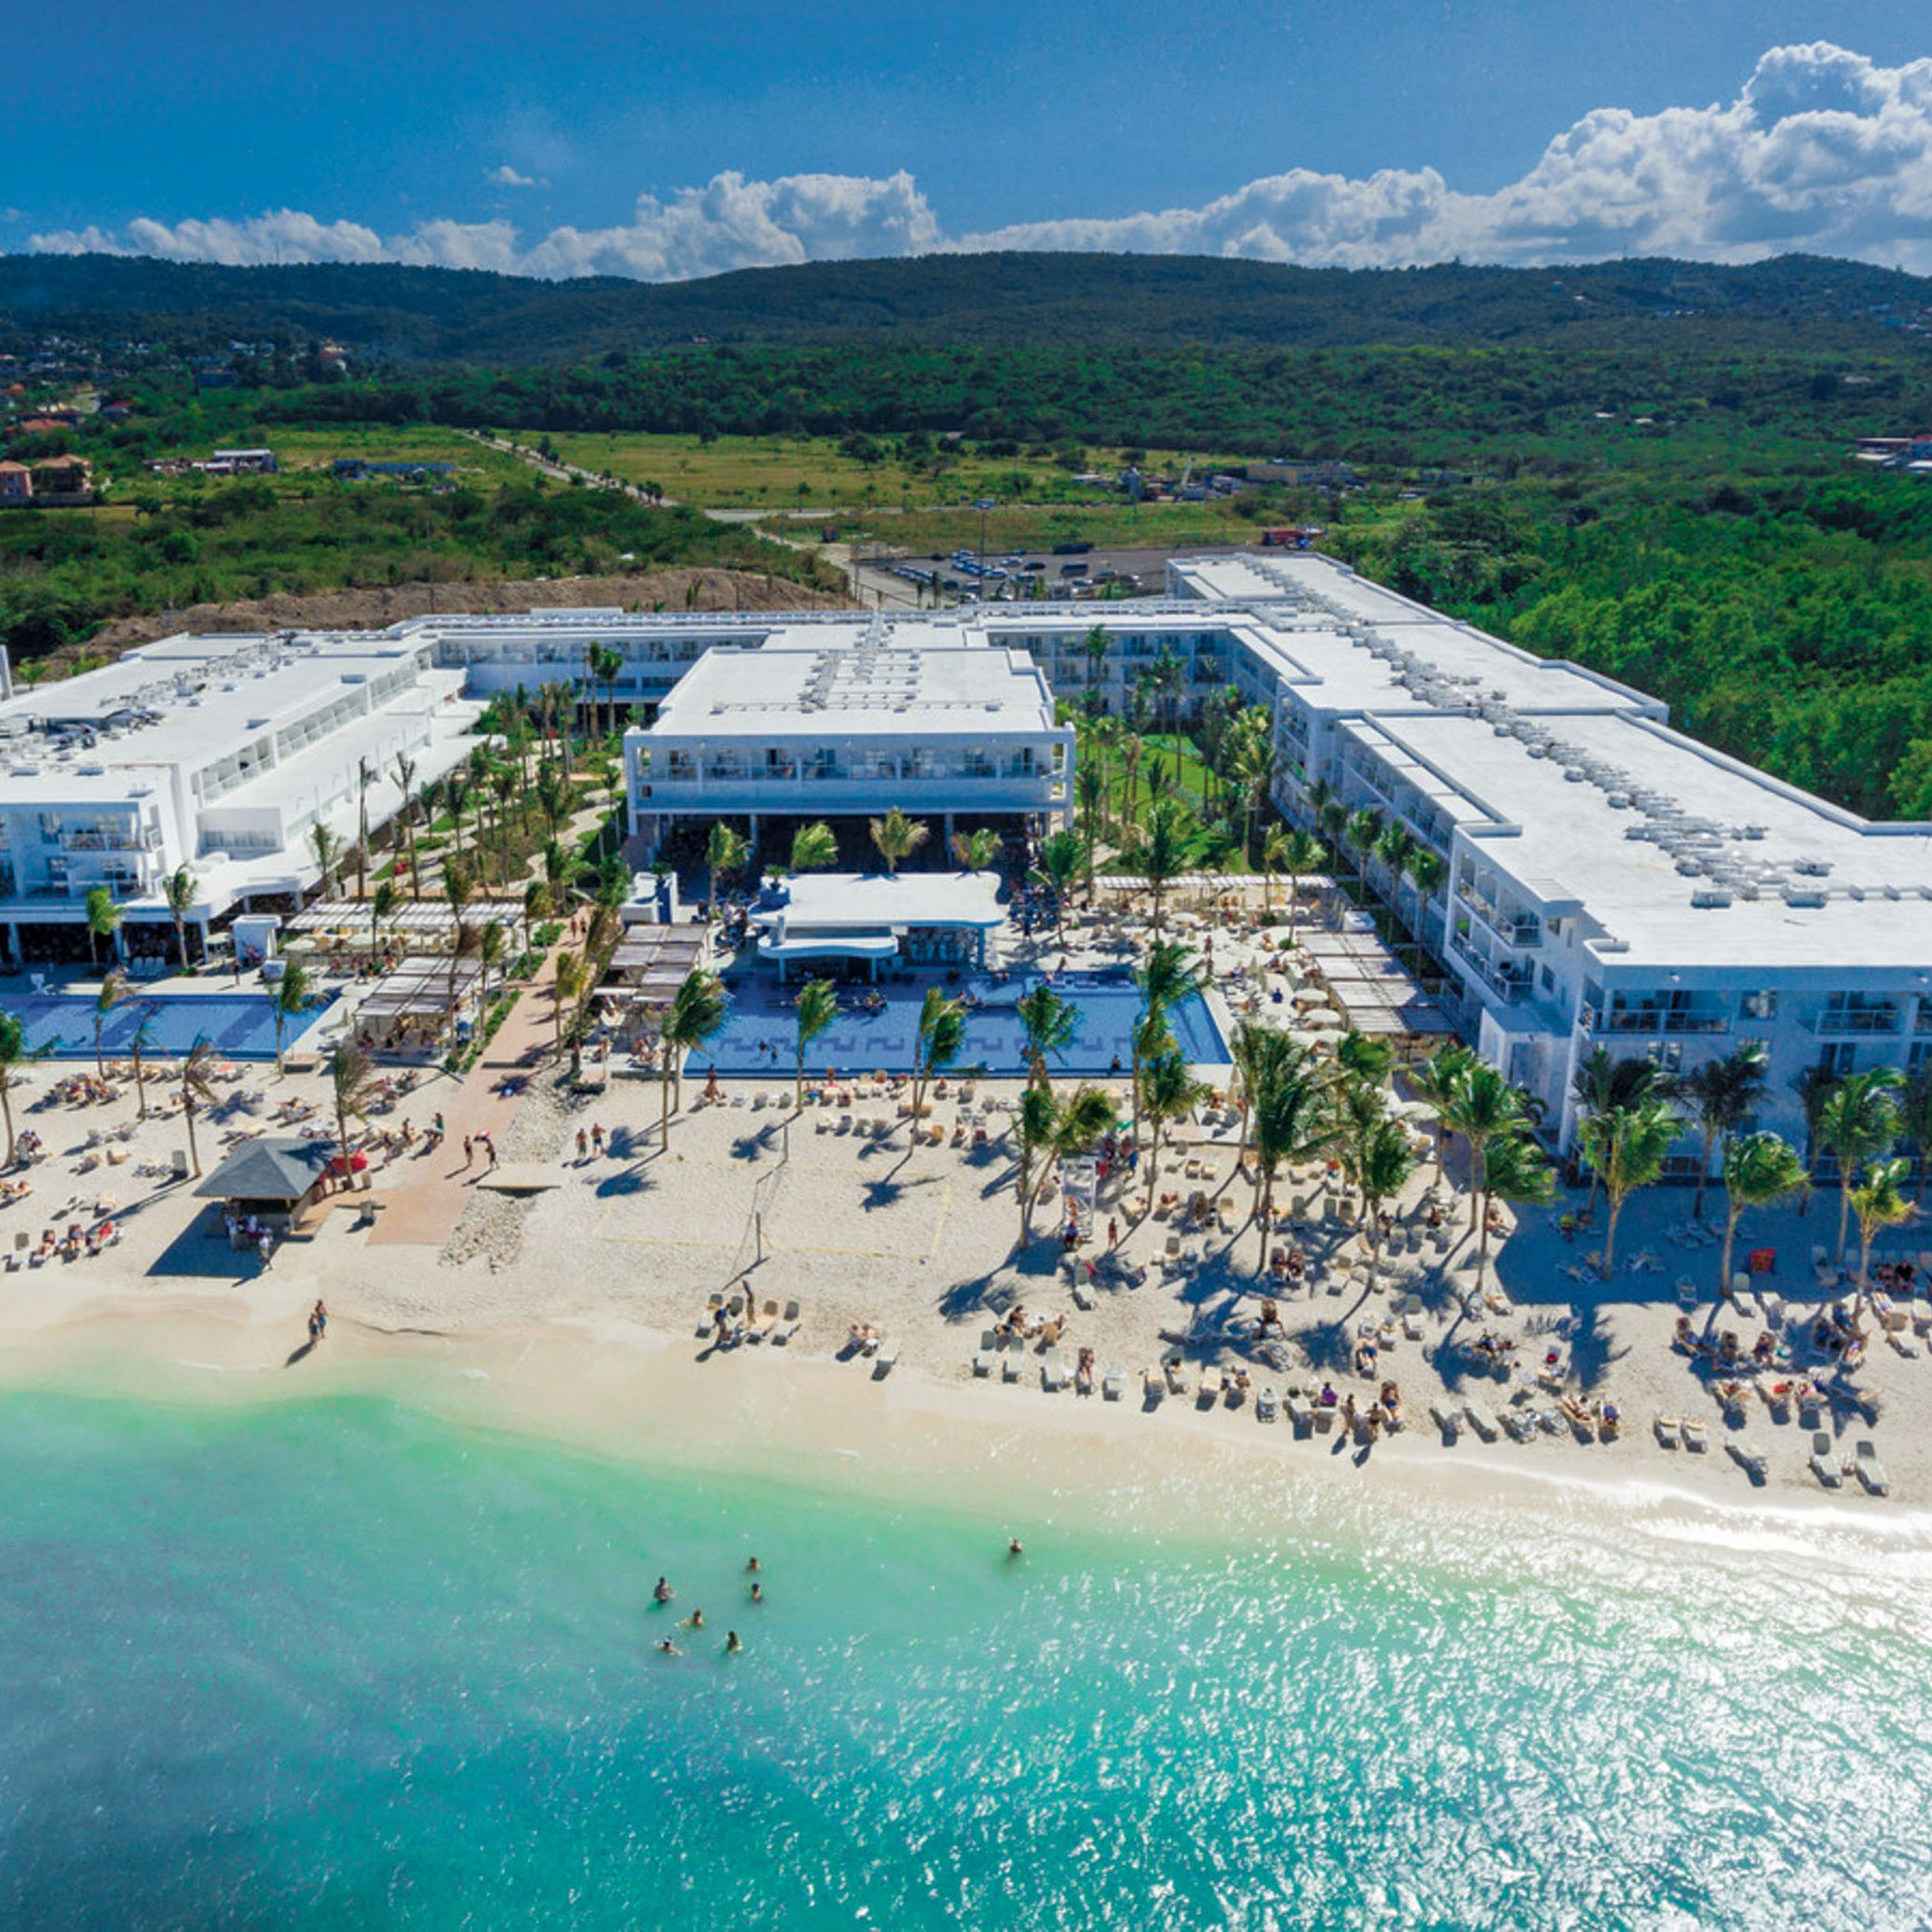 Jamaica audits resorts in wake of sexual assault scandal